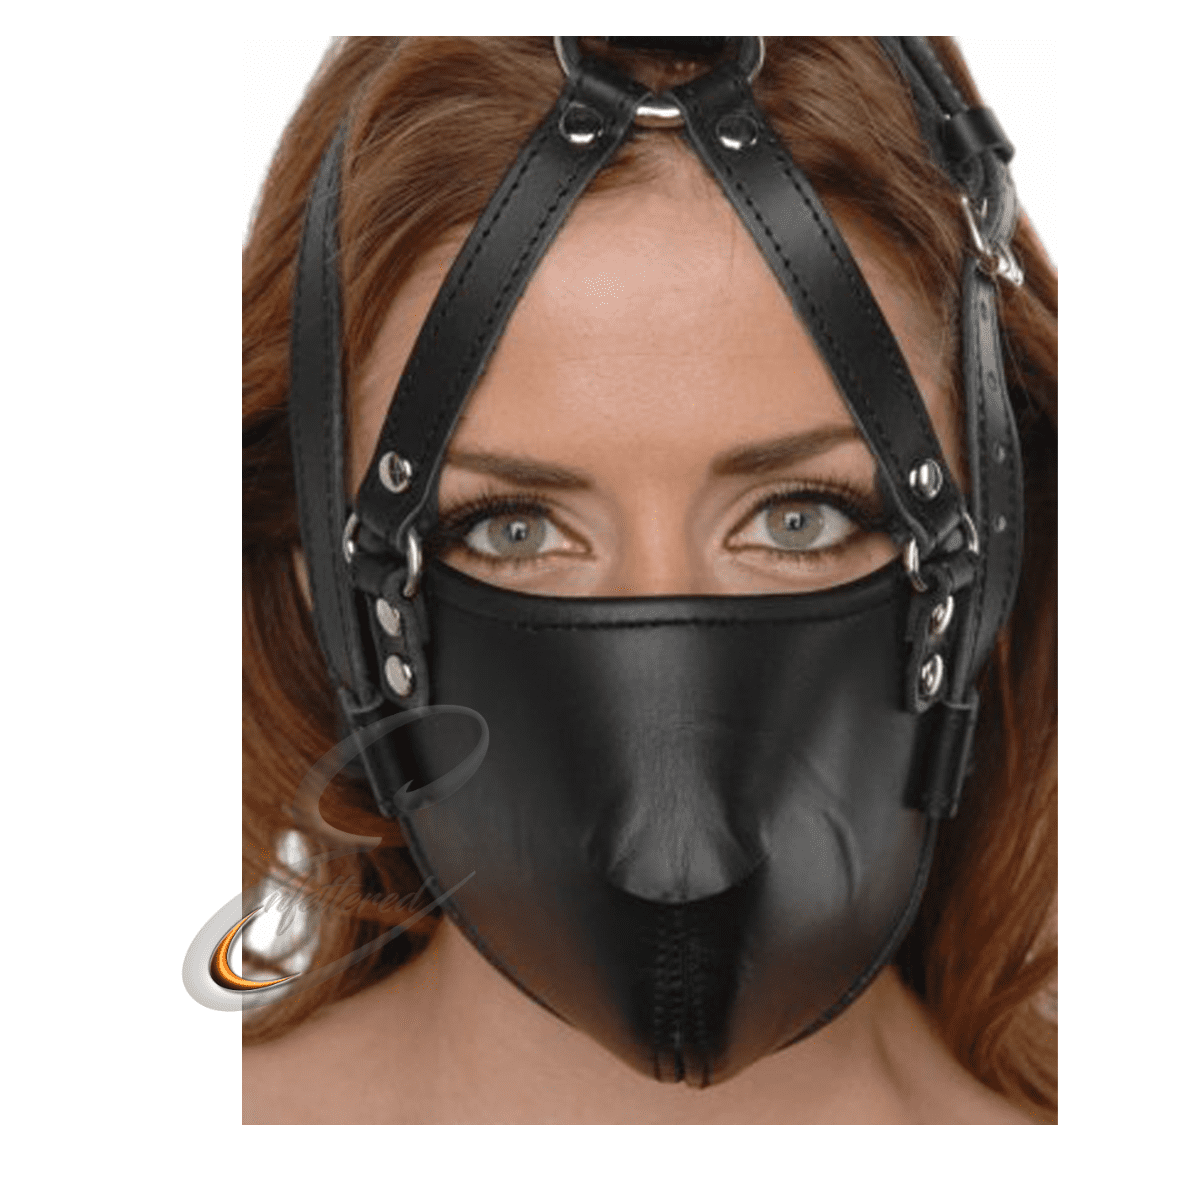 Enfettered Strict Leather FACE Harness Muzzle